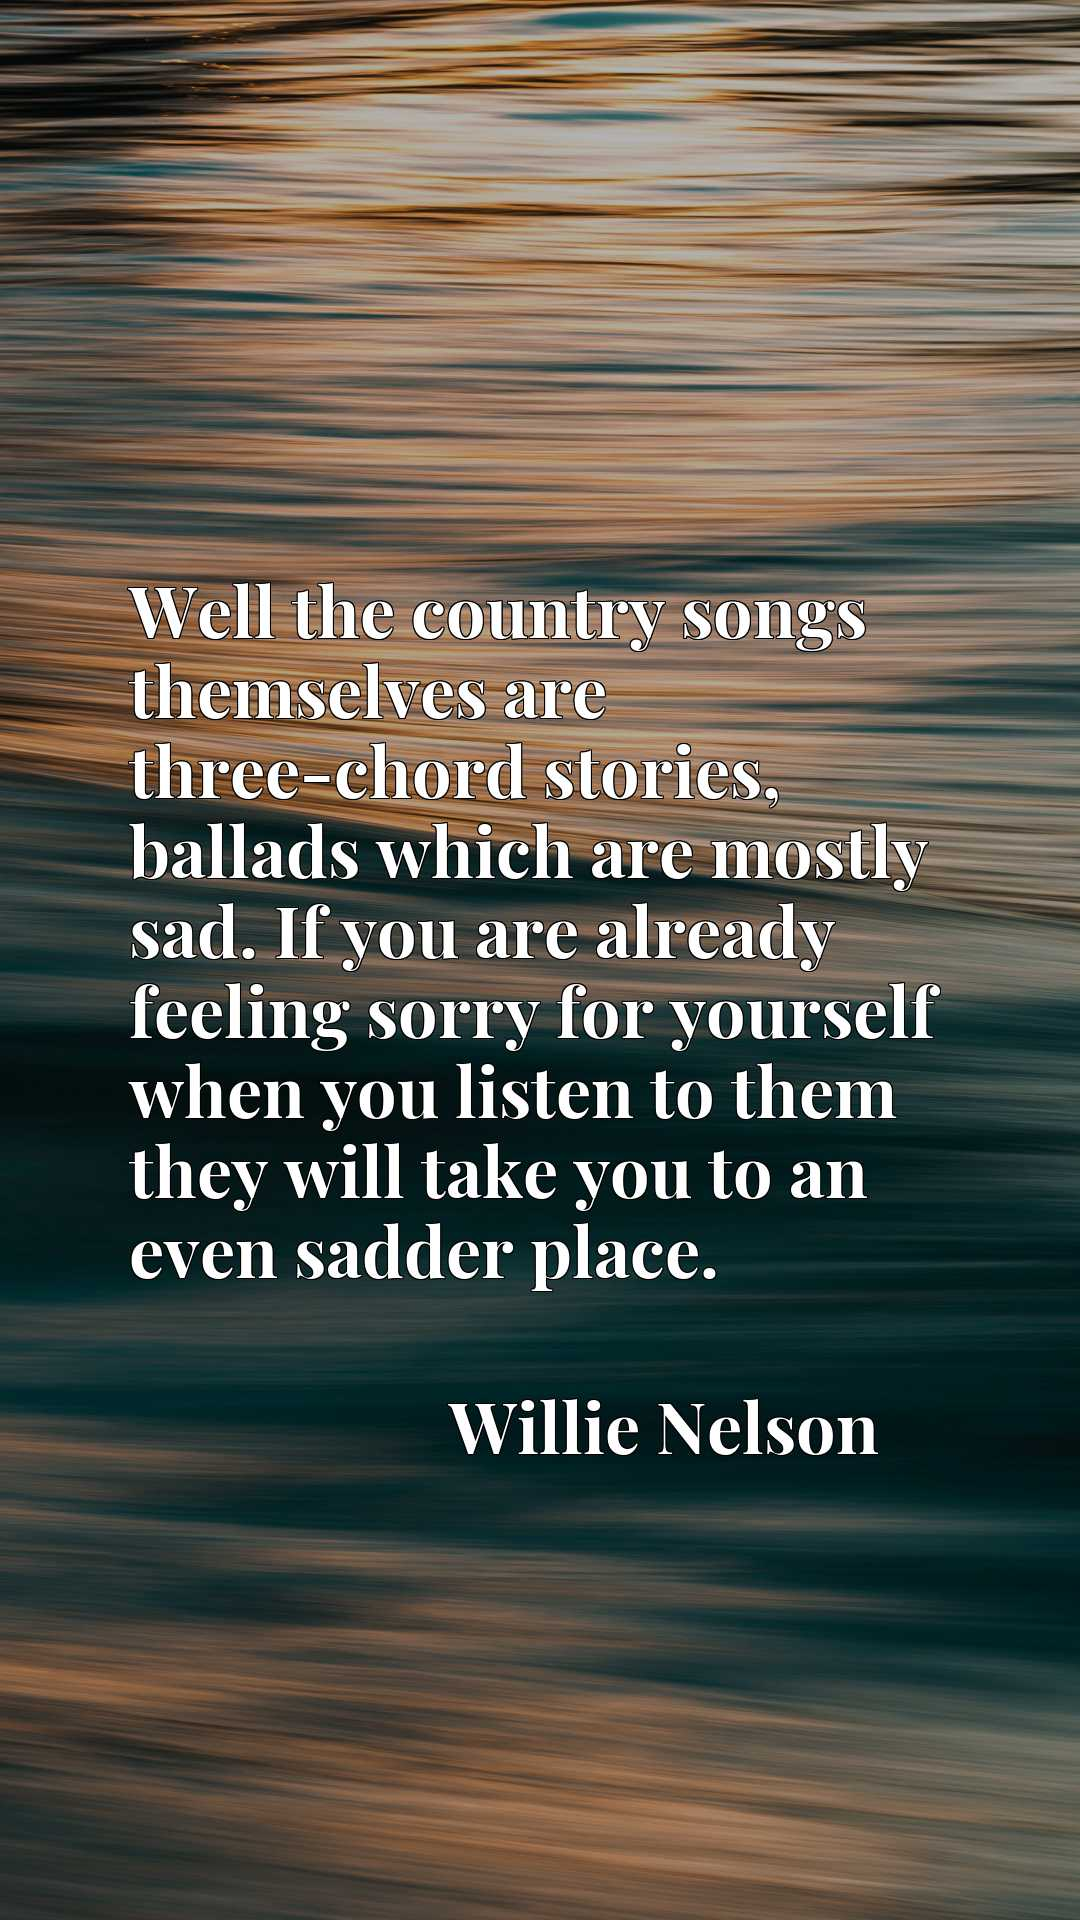 Well the country songs themselves are three-chord stories, ballads which are mostly sad. If you are already feeling sorry for yourself when you listen to them they will take you to an even sadder place.